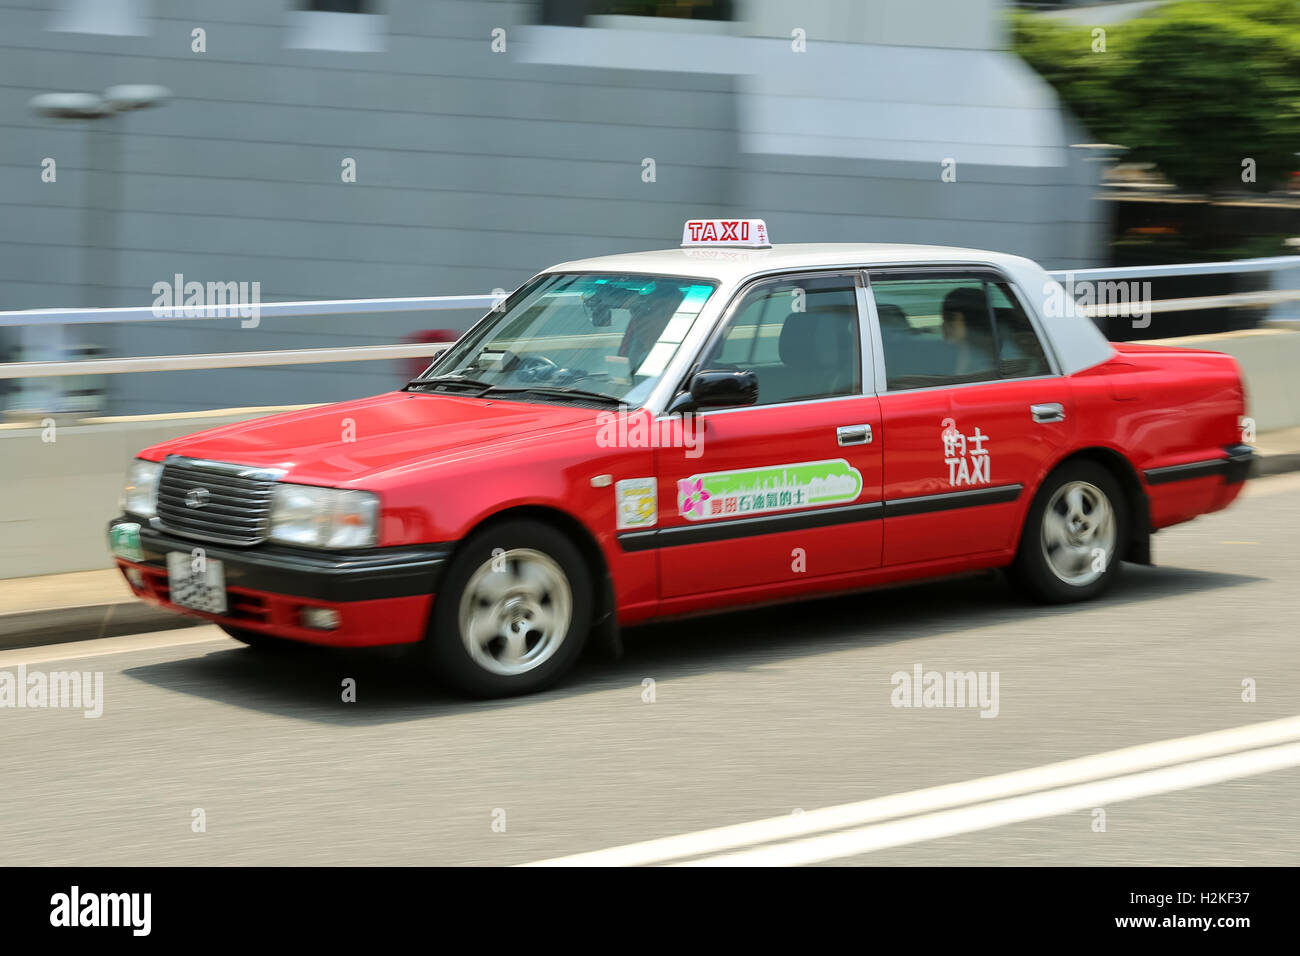 HONG KONG, - August 30, 2016: Red moving Hong Kong Taxi on a road with motion blur - Stock Image